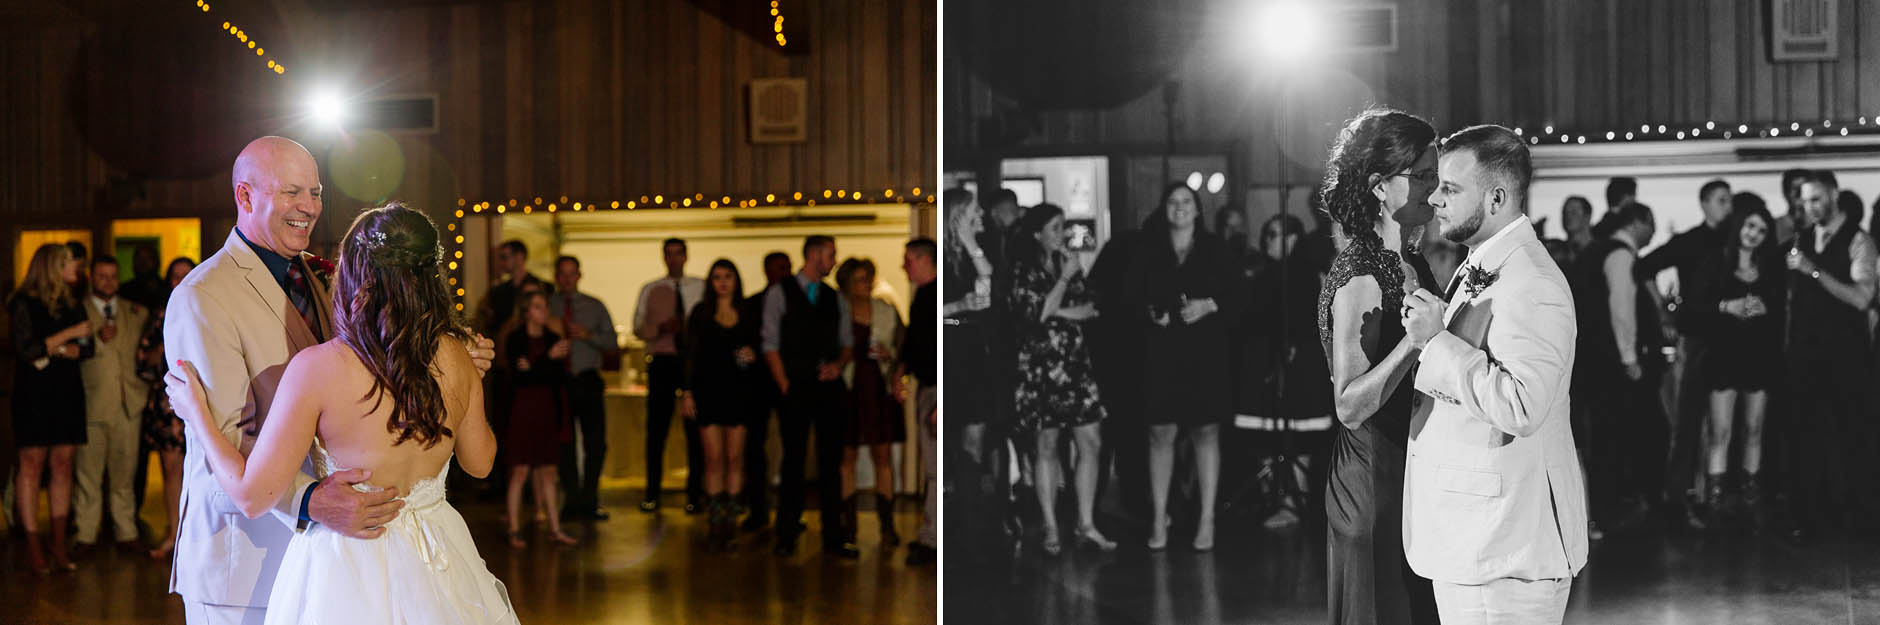 father-daughter-mother-son-dance-wedding-reception